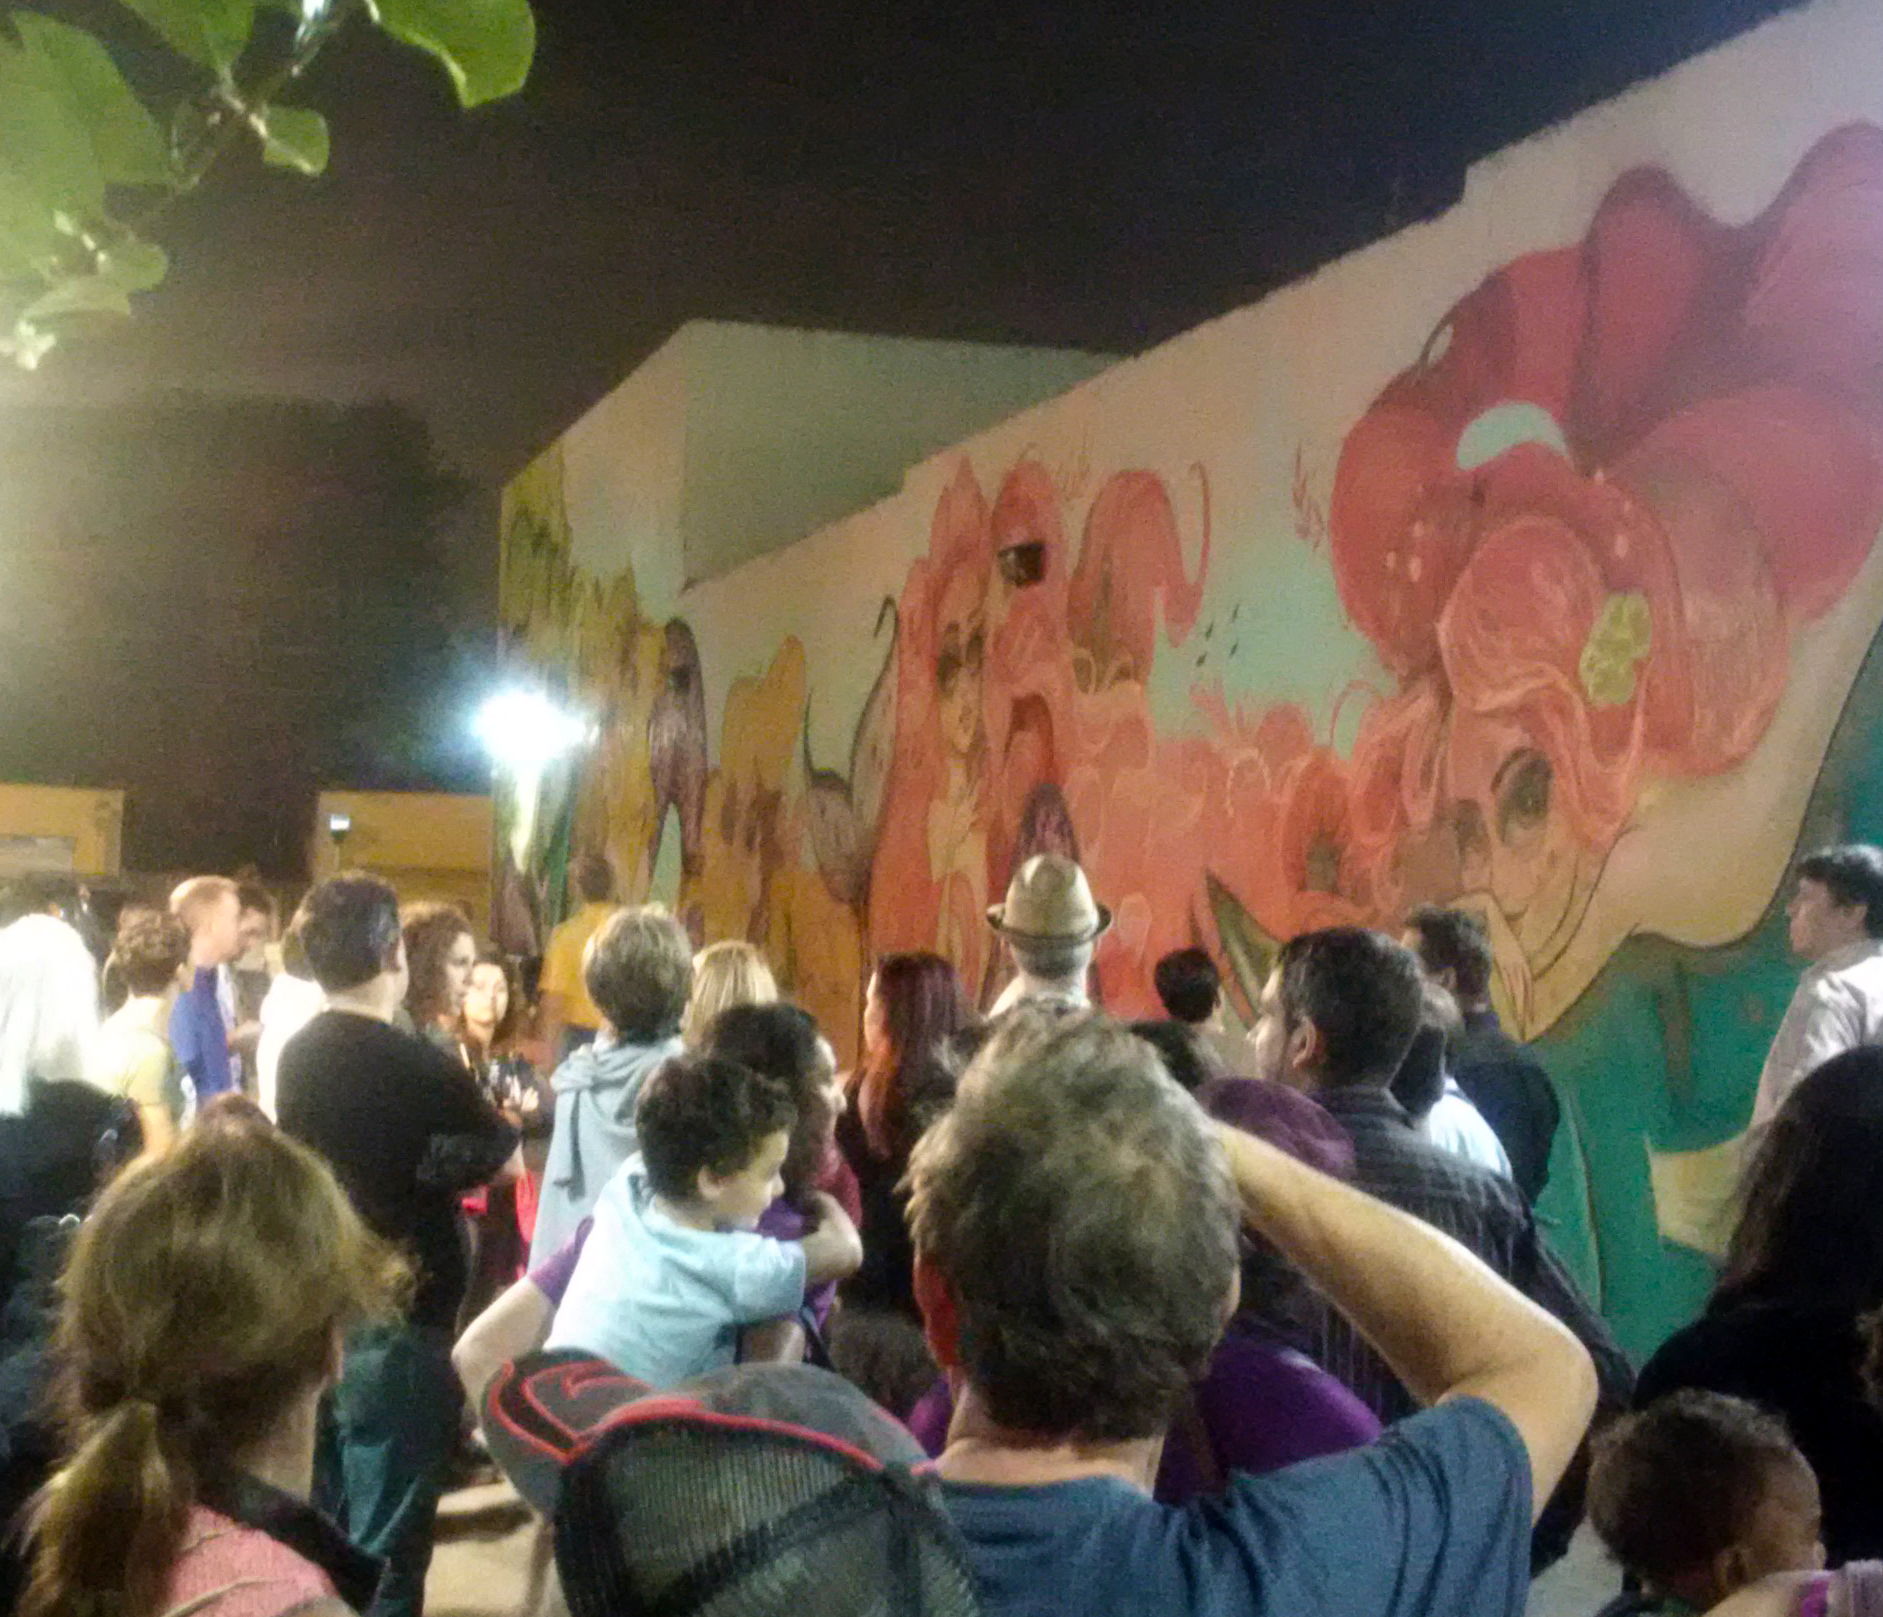 Hollywood community redevelopment agency fl mural tour for Downtown hollywood mural project